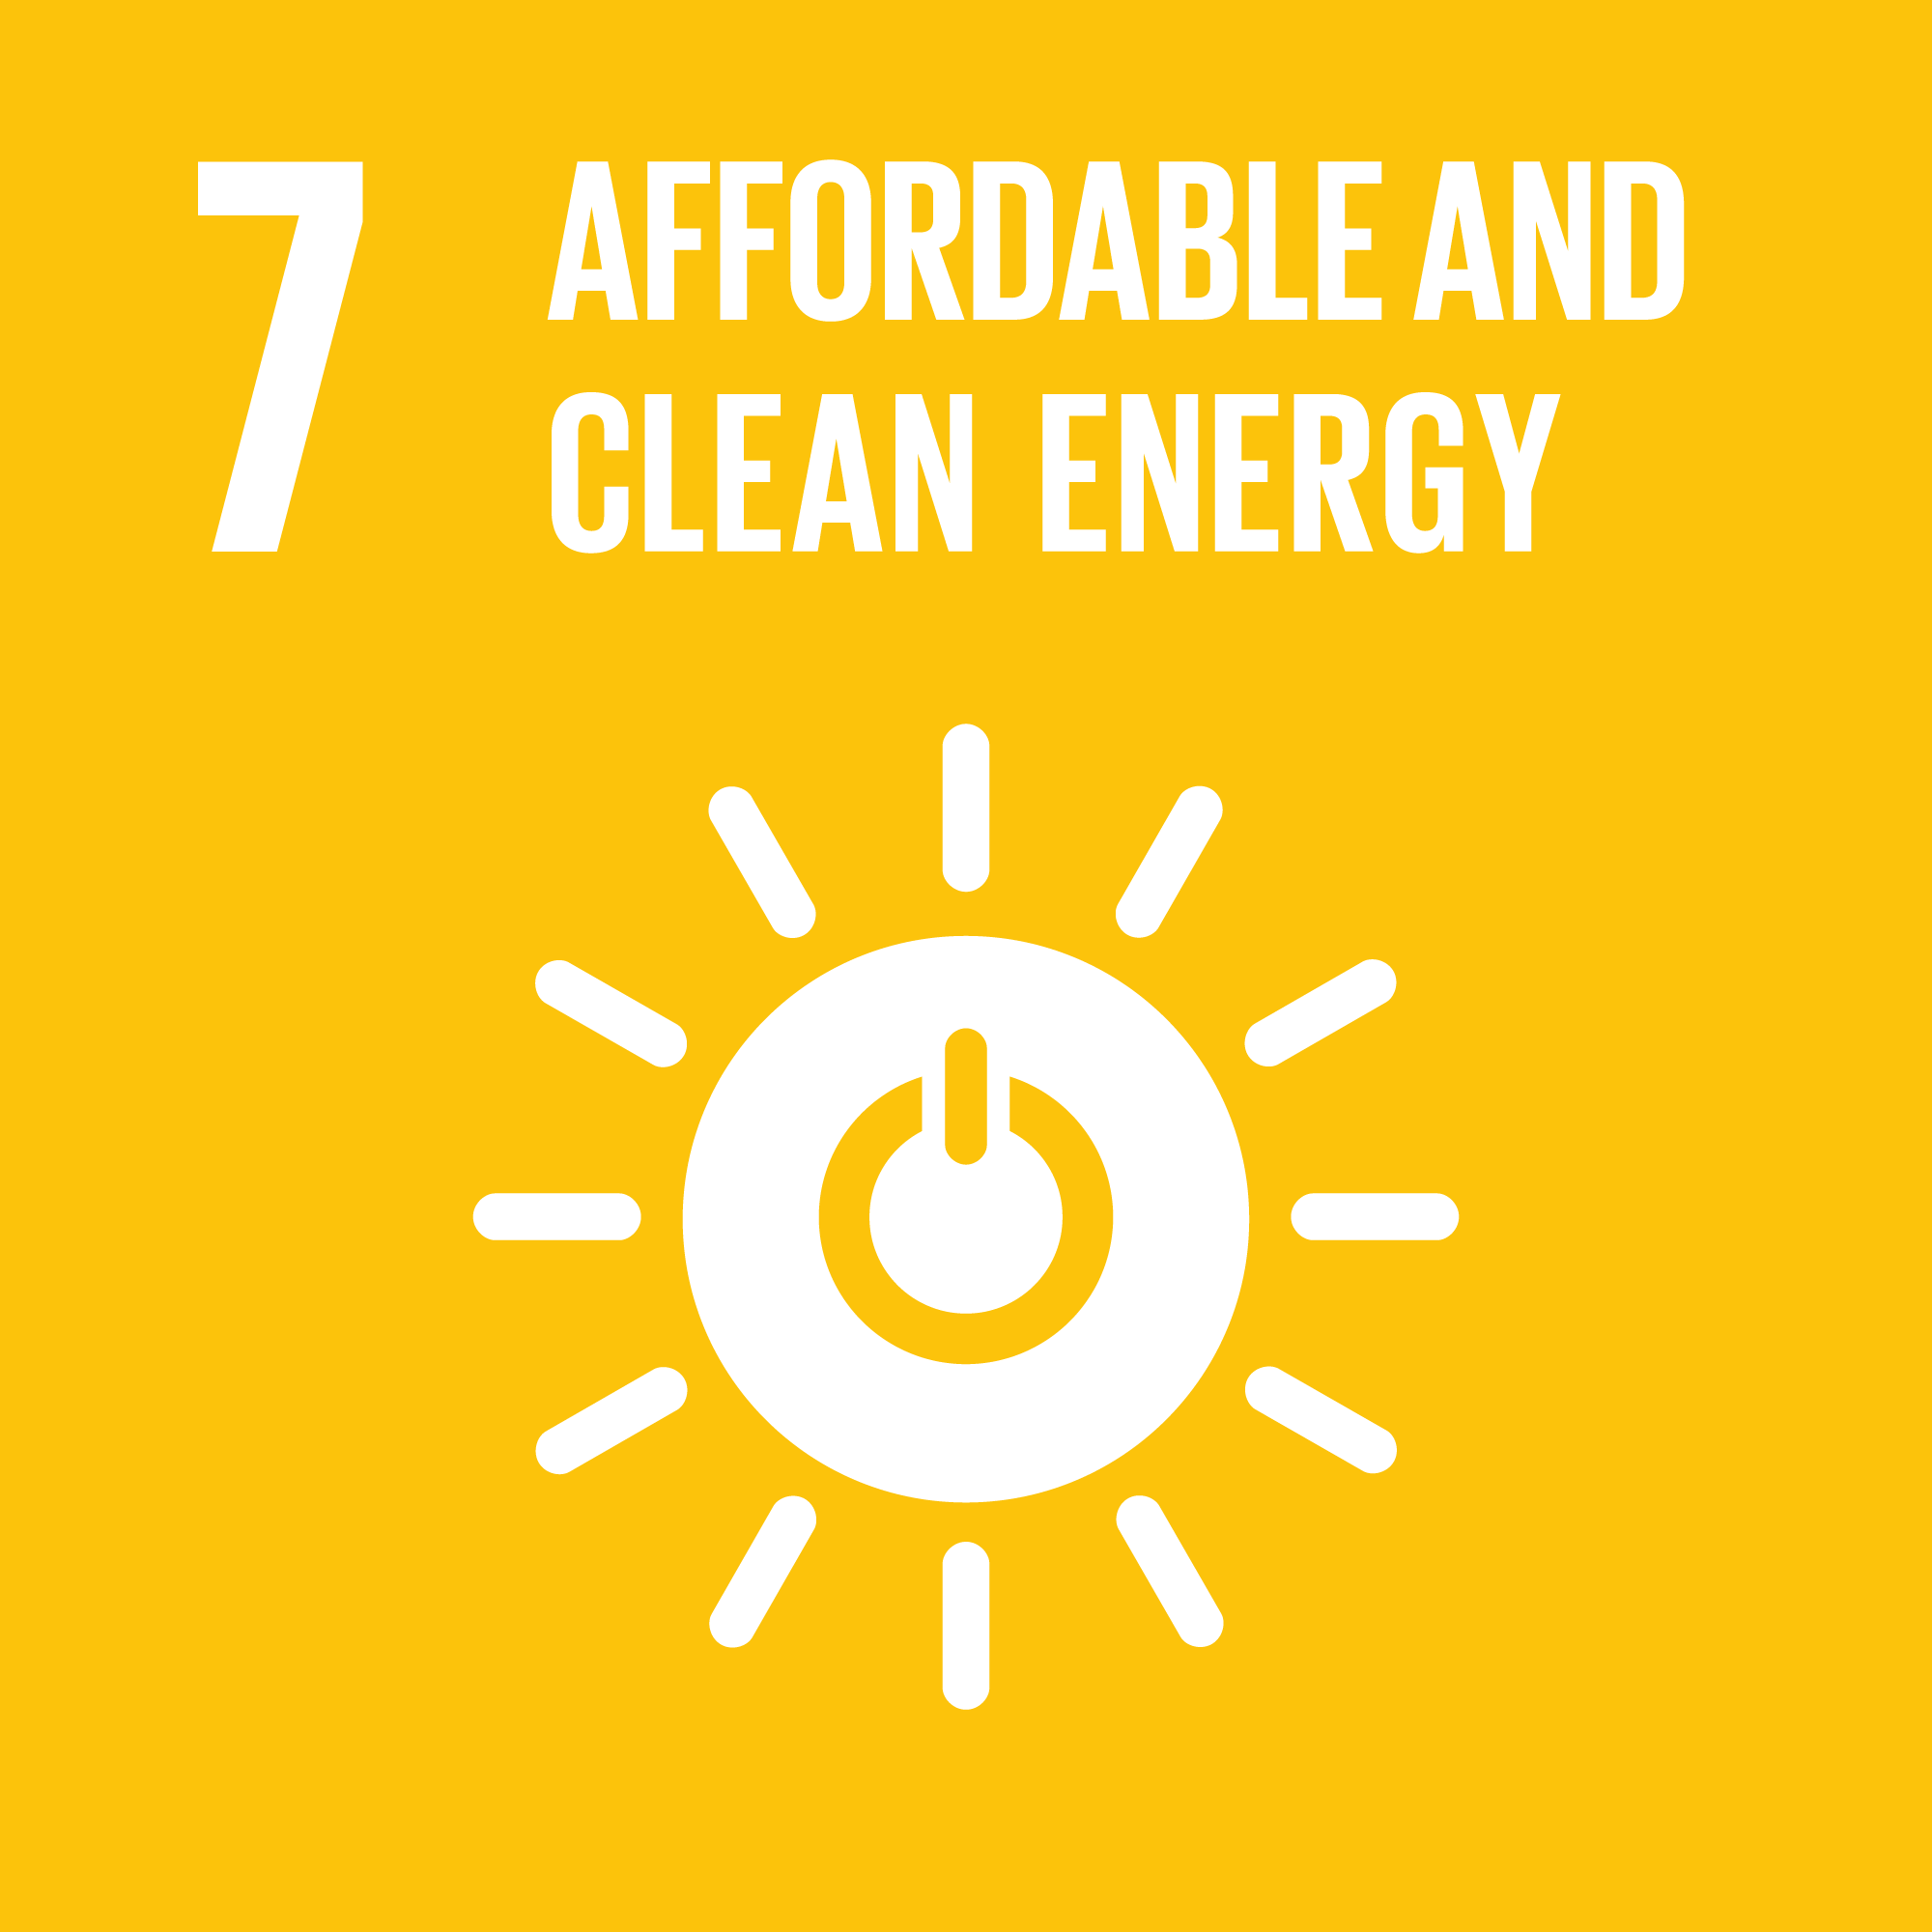 Icon for the global goals number 7, Affordable and clean energy